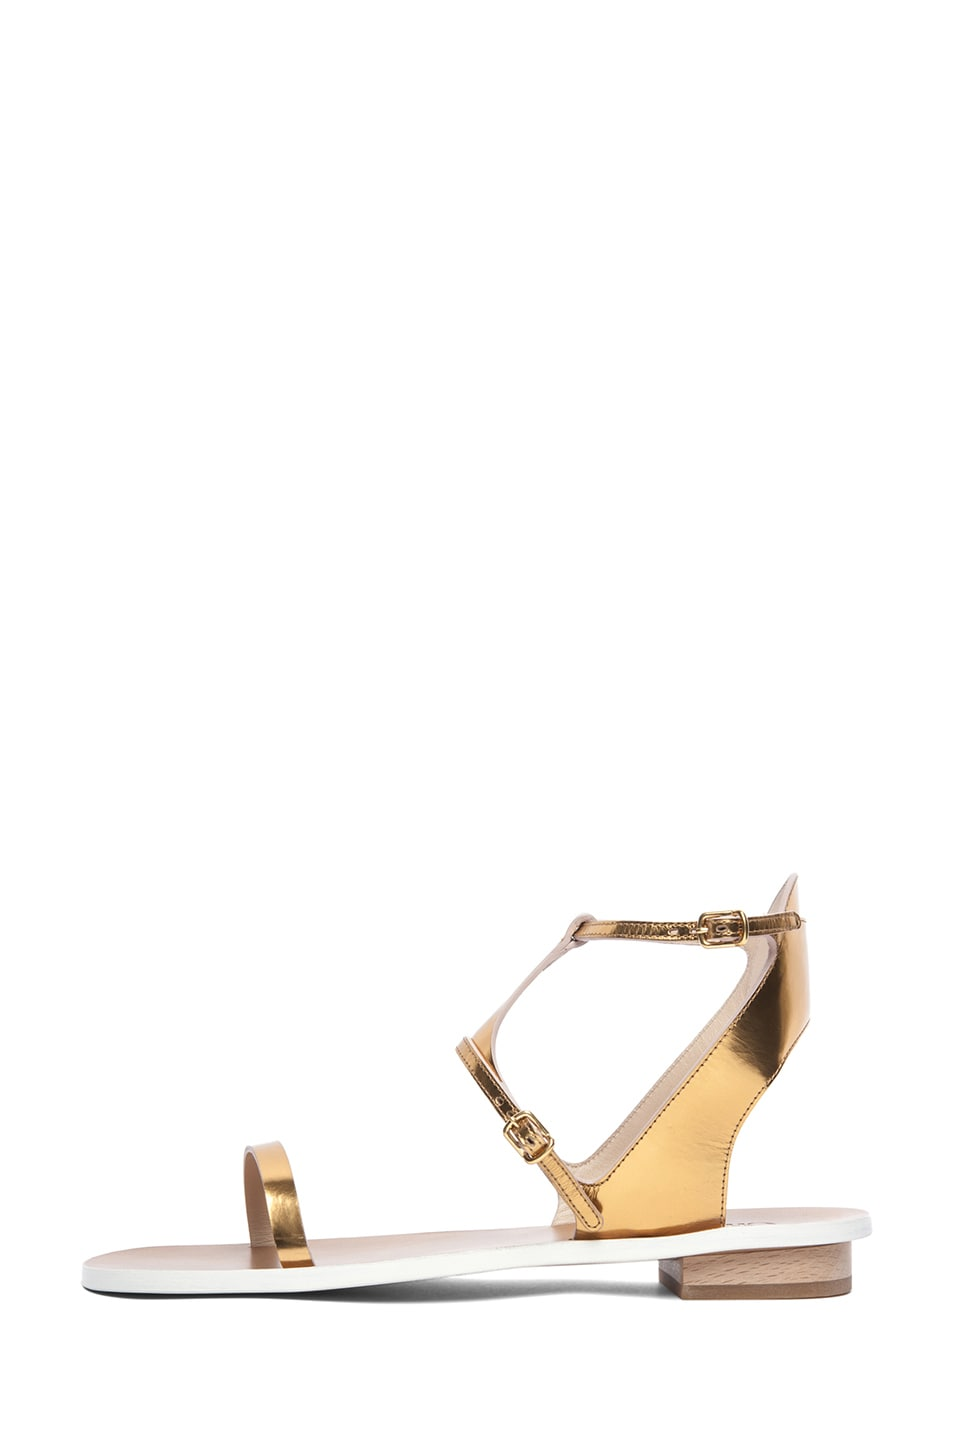 Image 1 of Chloe Metallic Leather Runway Sandals in Gold